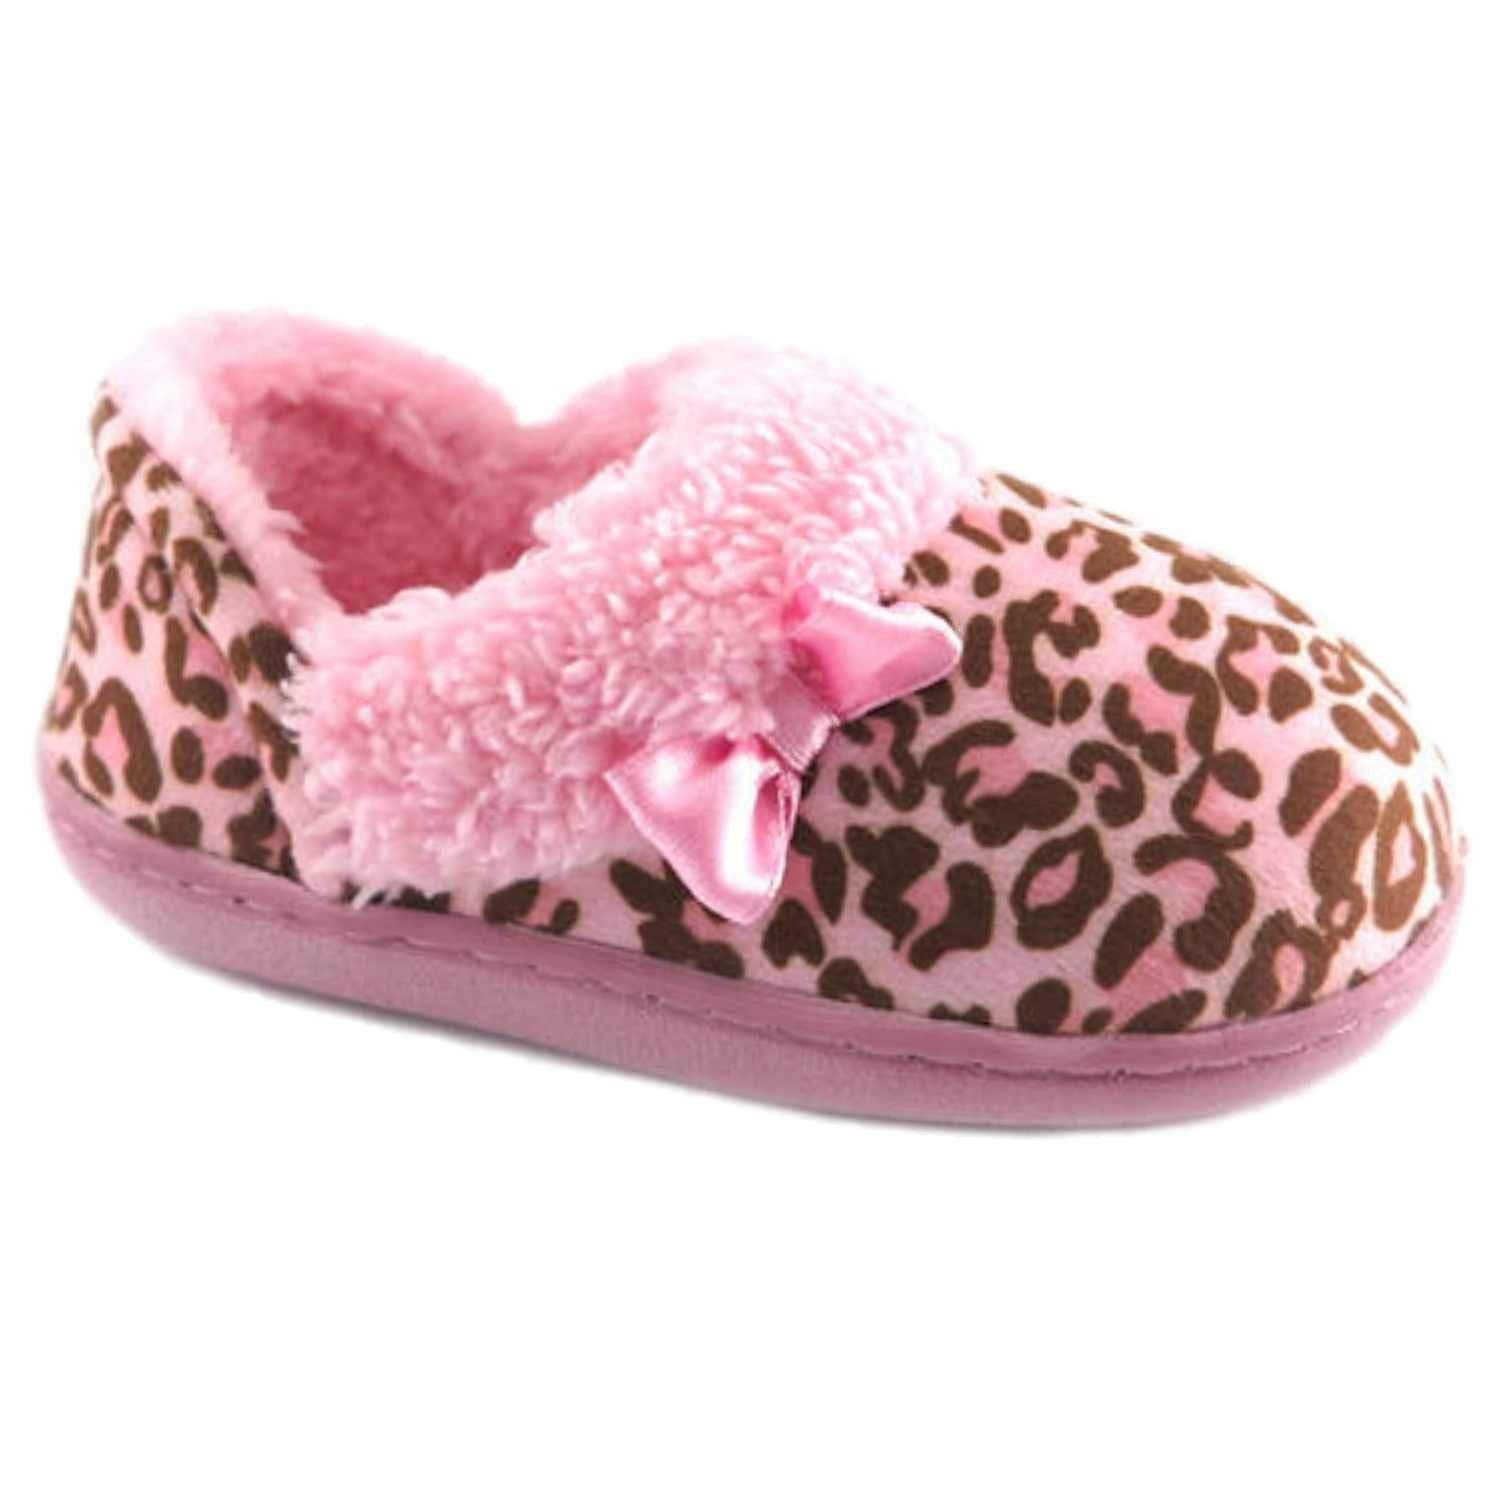 f53c6de102c Get Quotations · WMS Toddler Girls Fuzzy Pink Leopard Print Aline Loafer  Style Slippers House Shoes